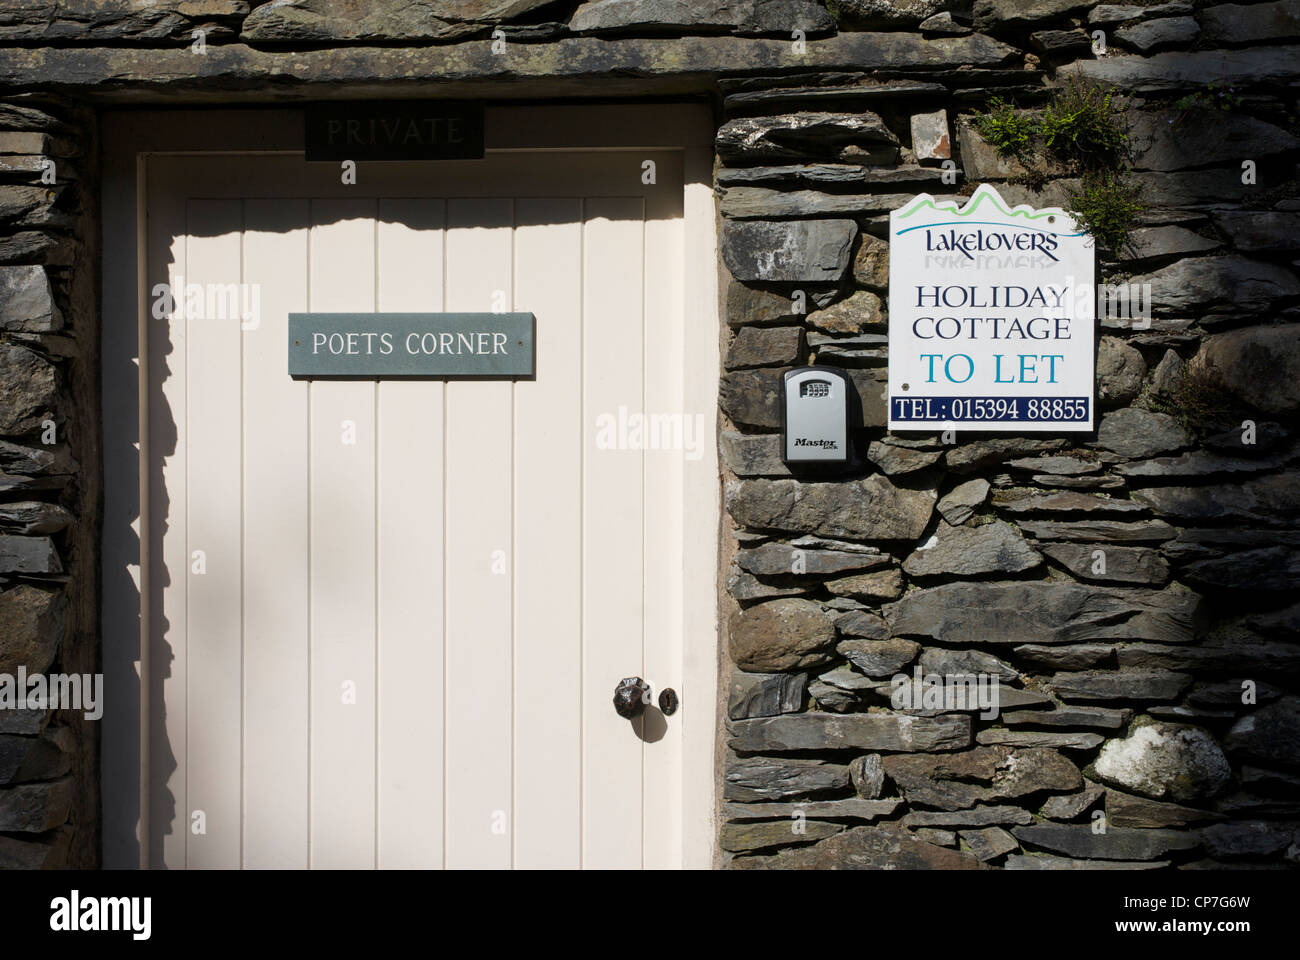 Poets Corner, a holiday cottage to let in Grasmere, Lake District National Park, Cumbria, England UK - Stock Image